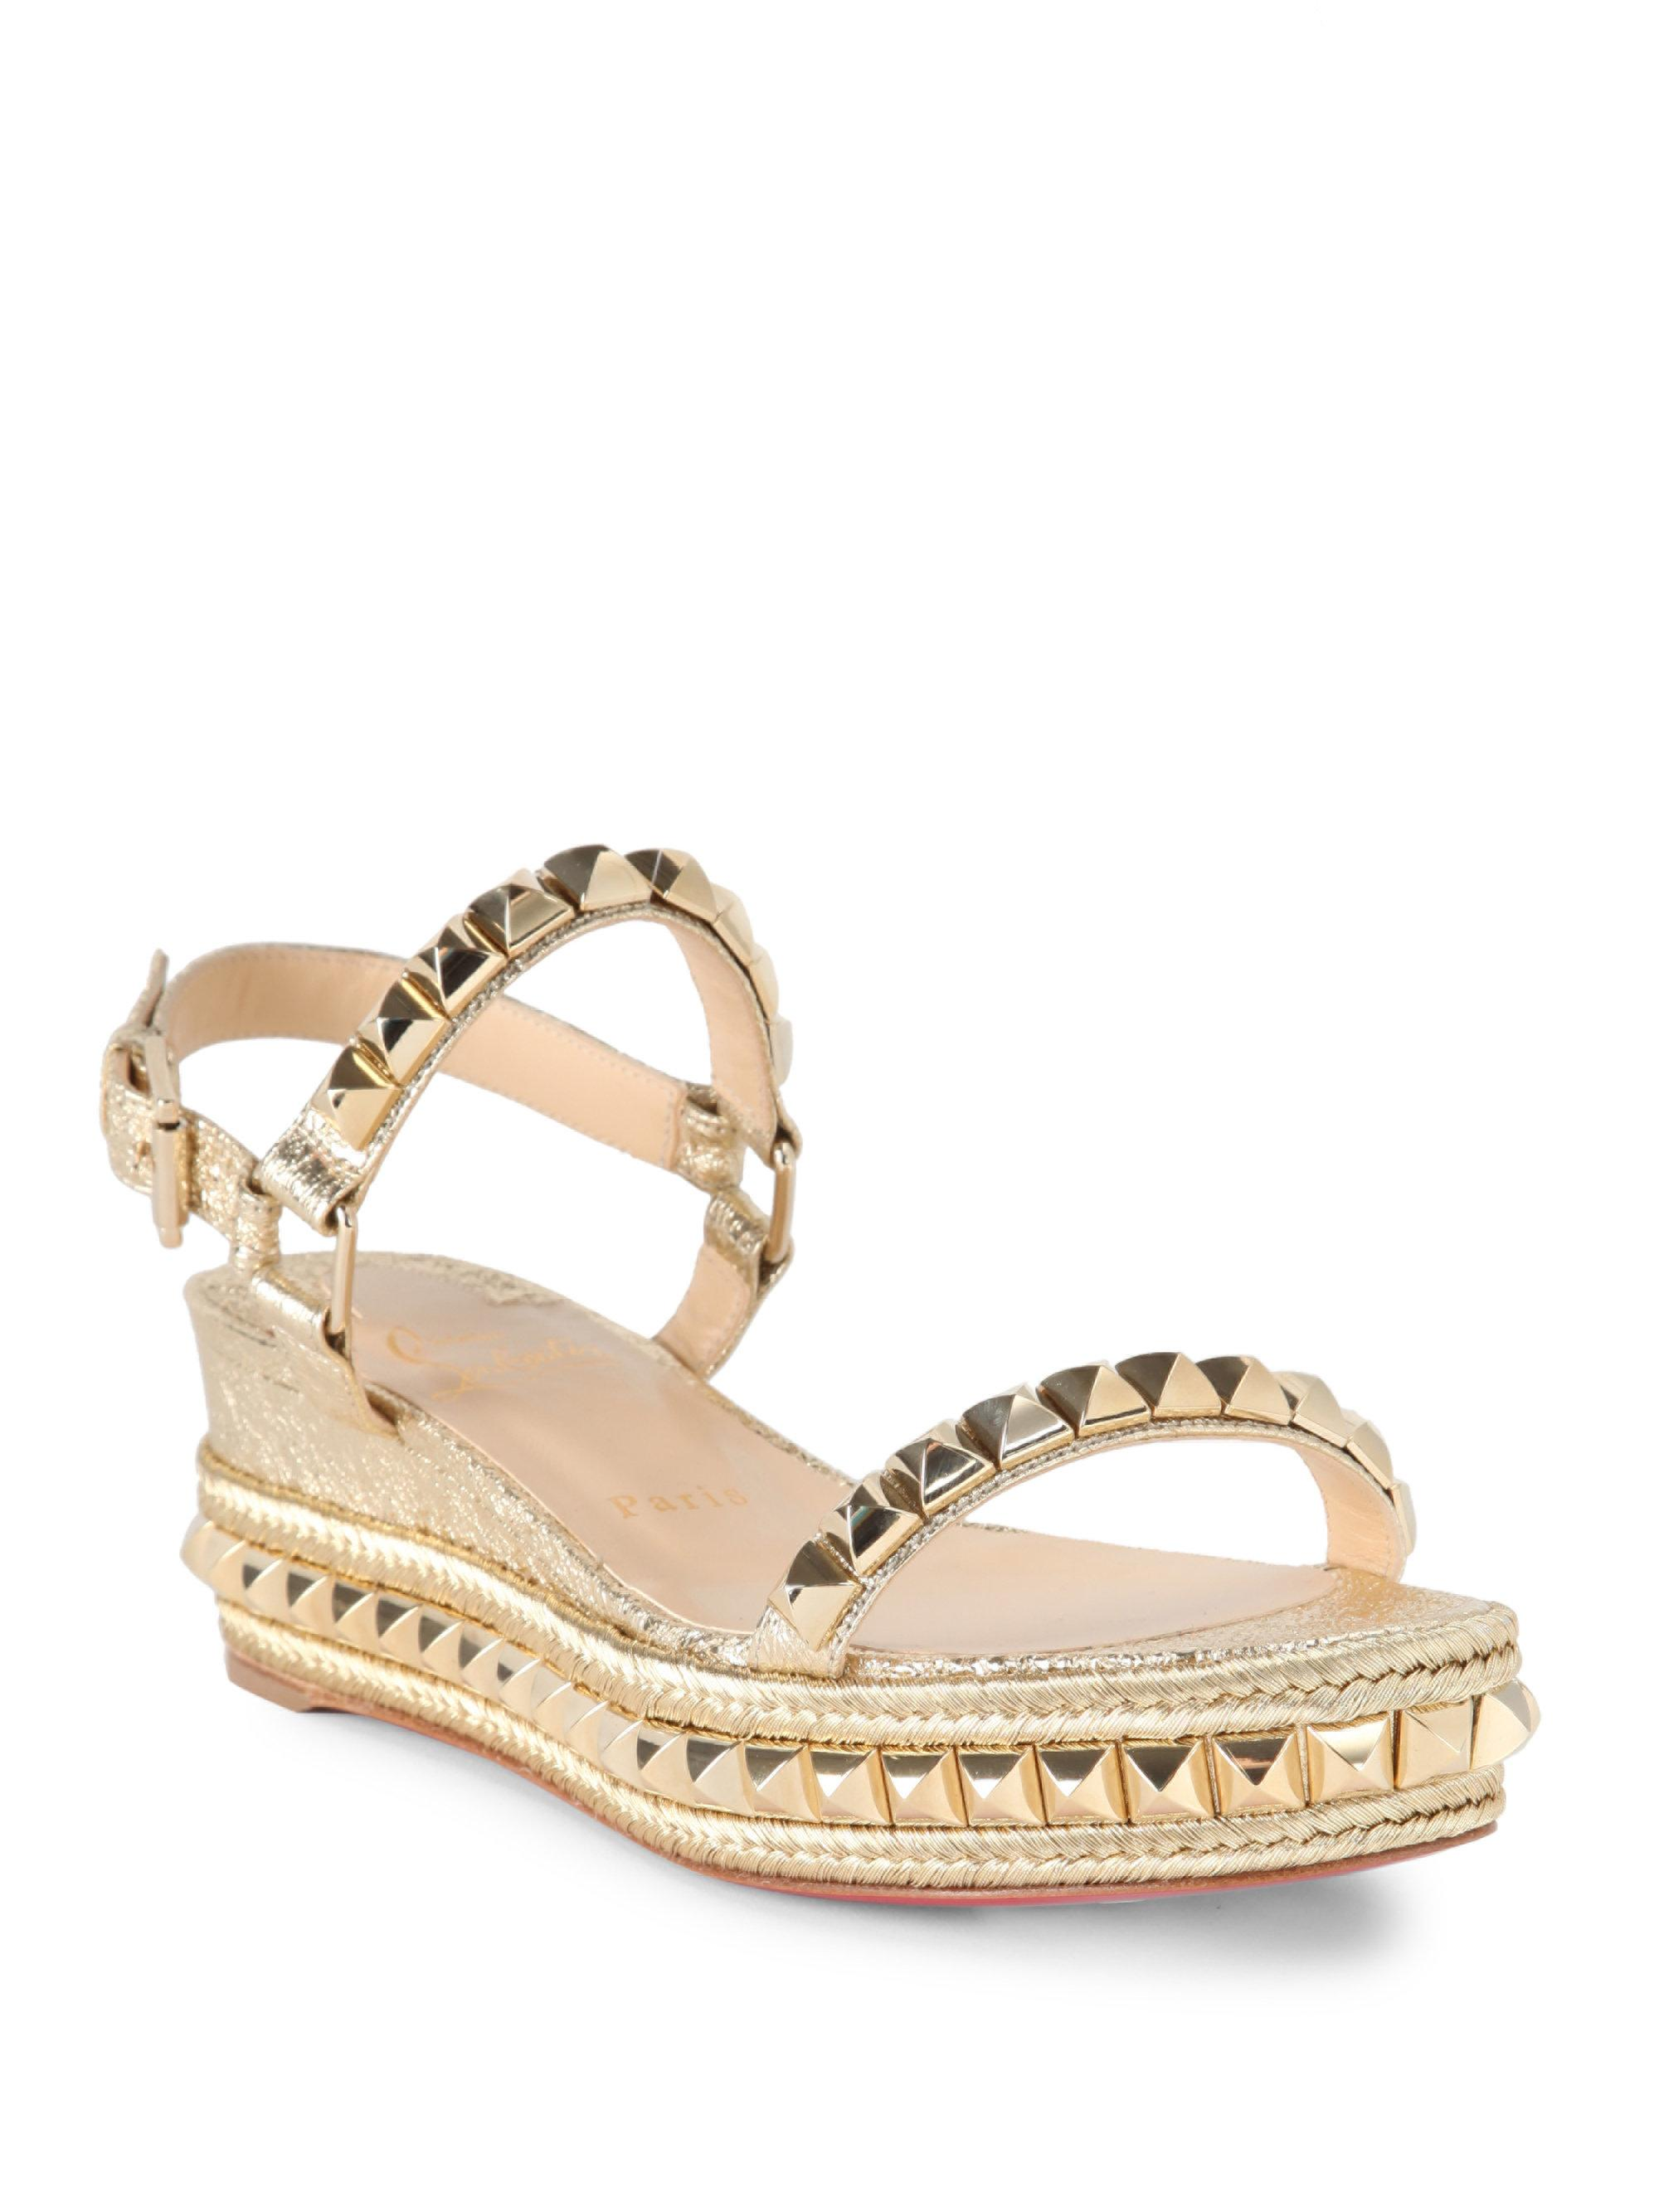 huge discount 574a3 07c9c Christian Louboutin Cataclou 60 Studded Metallic Leather Espadrille Wedge  Sandals